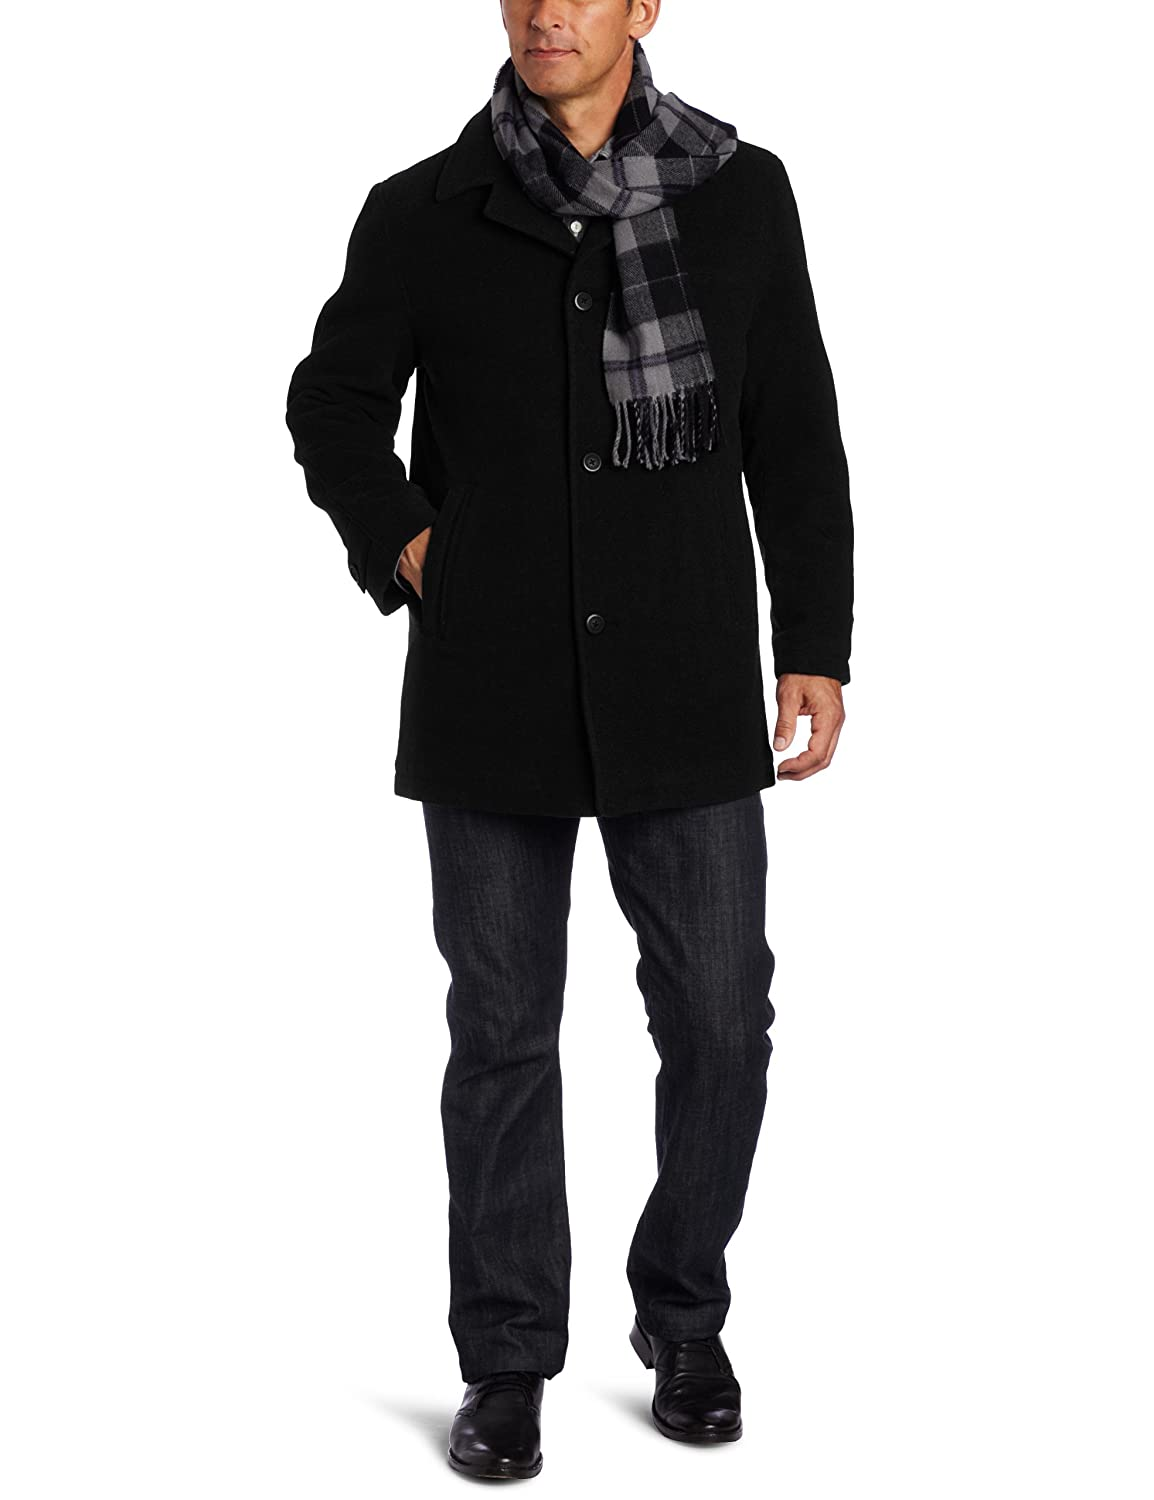 London Fog Men's Barrington Car Coat, Black, Large $50